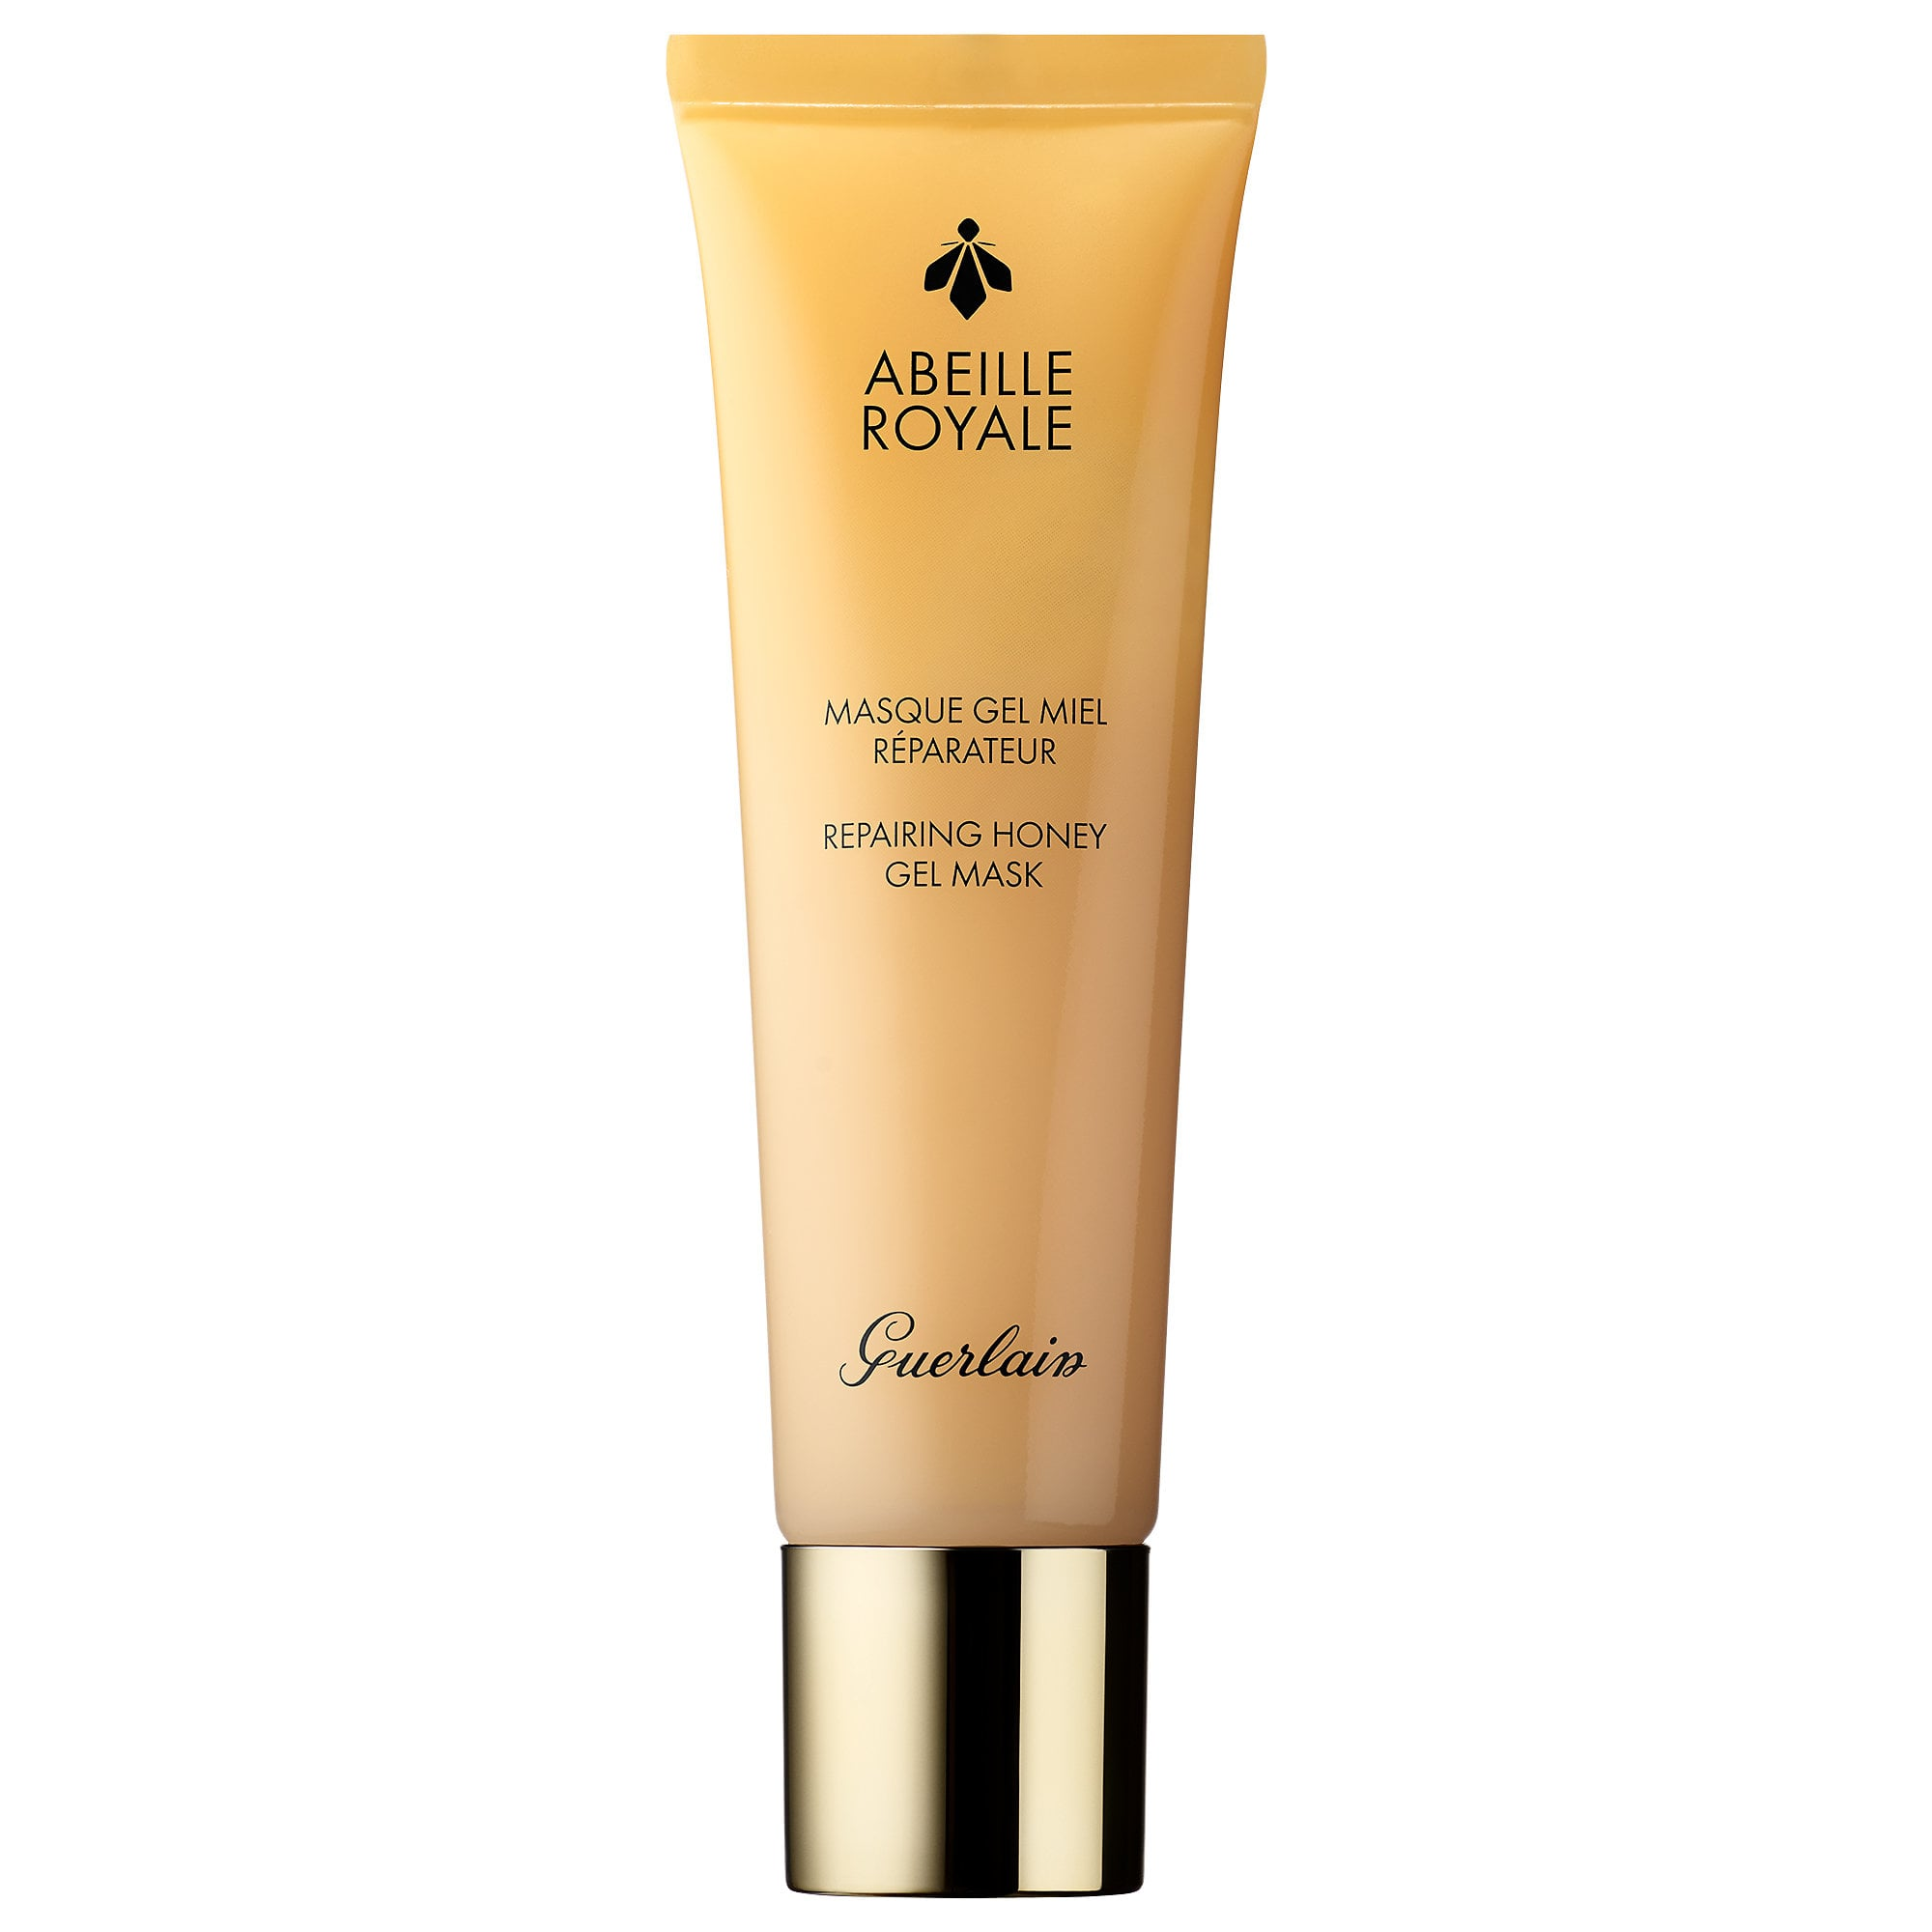 guerlain-abeille-royale-reparing-honey-mask-jpg.jpg